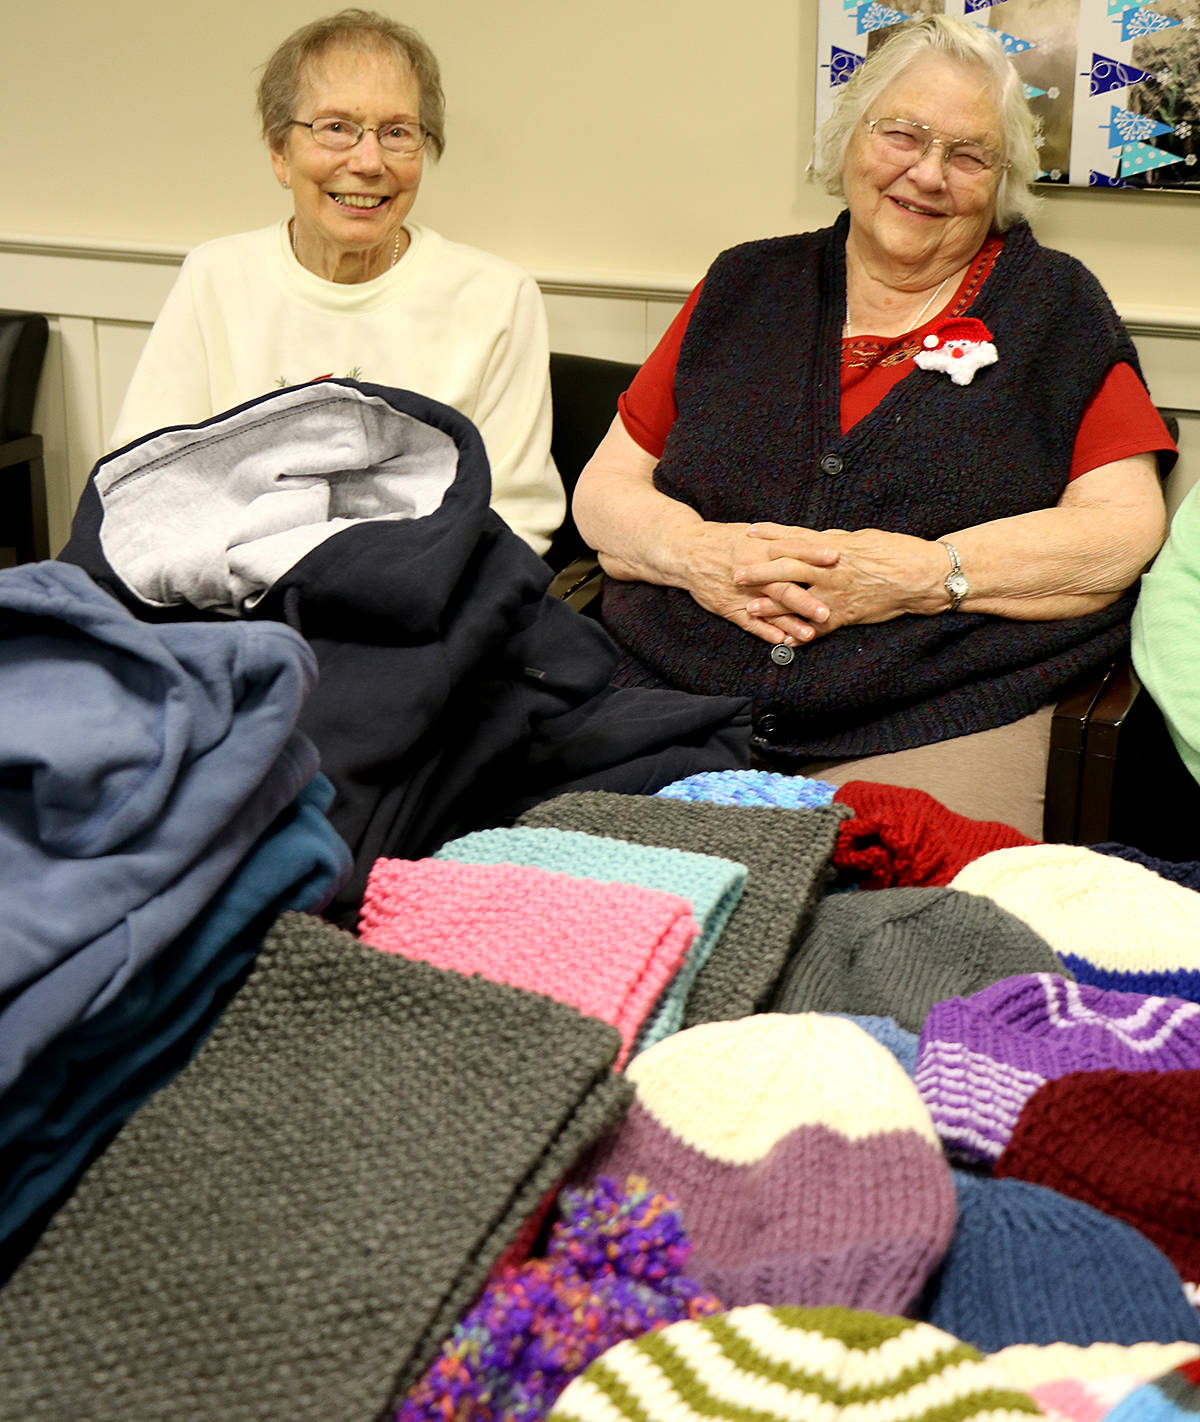 Residents from Langley Seniors Village, like Mildred Nichols and Maxine Olson, have been making and collecting warm clothing for the homeless for the past few months, as part of the annual Sock Granny campaign. (Special to the Langley Advance)